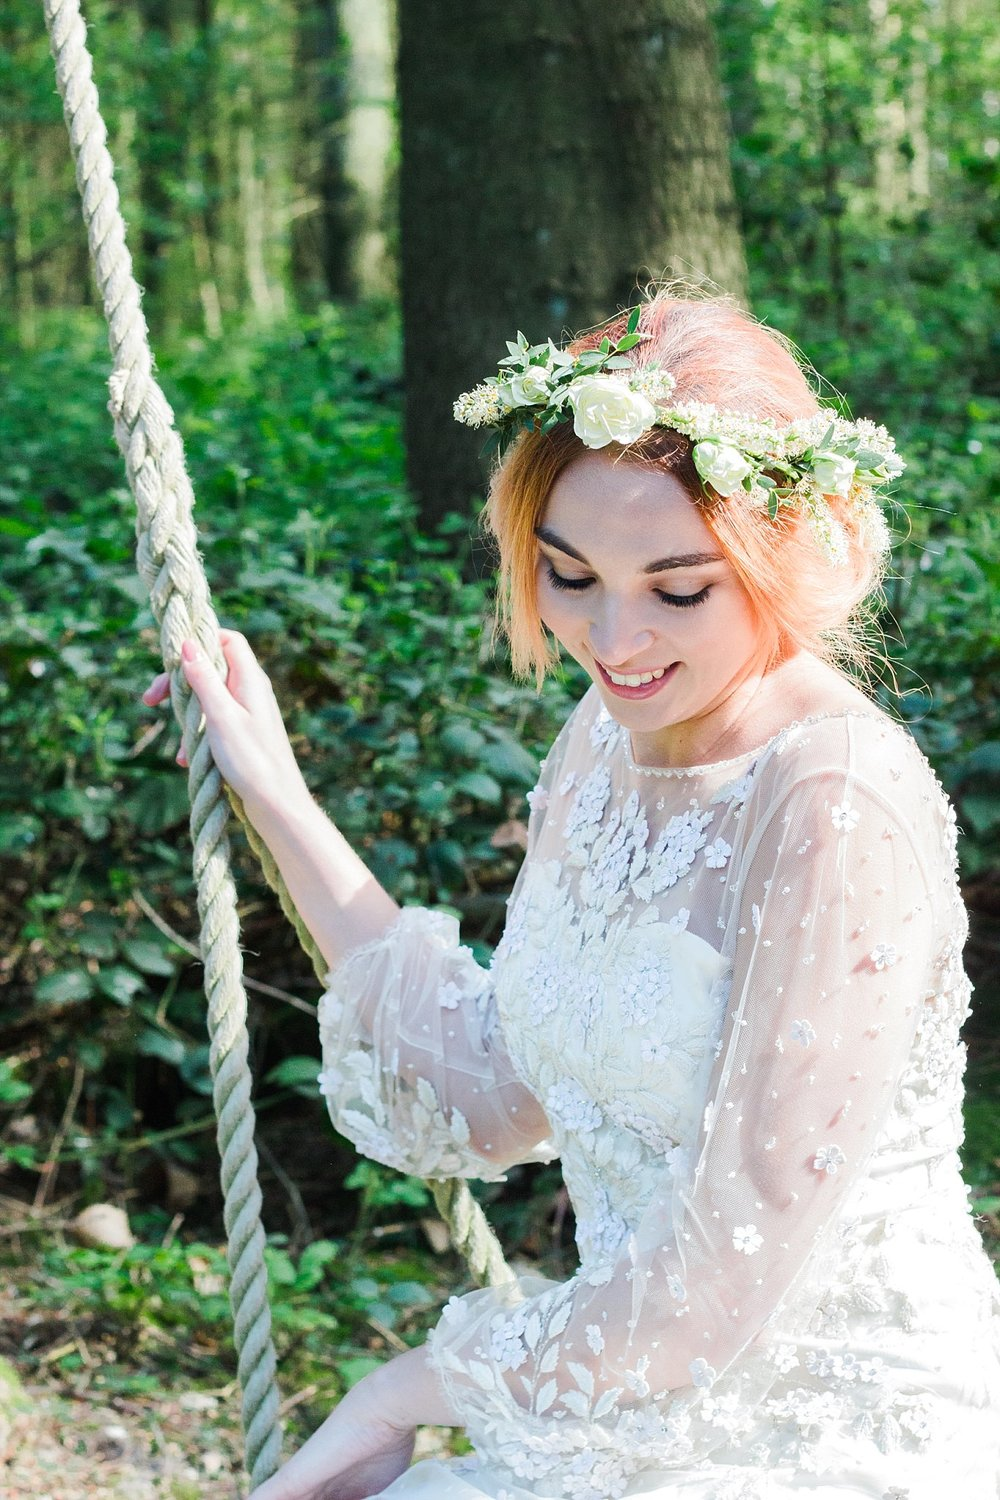 Vintage Amy Wedding Styling-Vintage Whimsical Woodland Wedding Kent-Vintage Bride Flower Crown